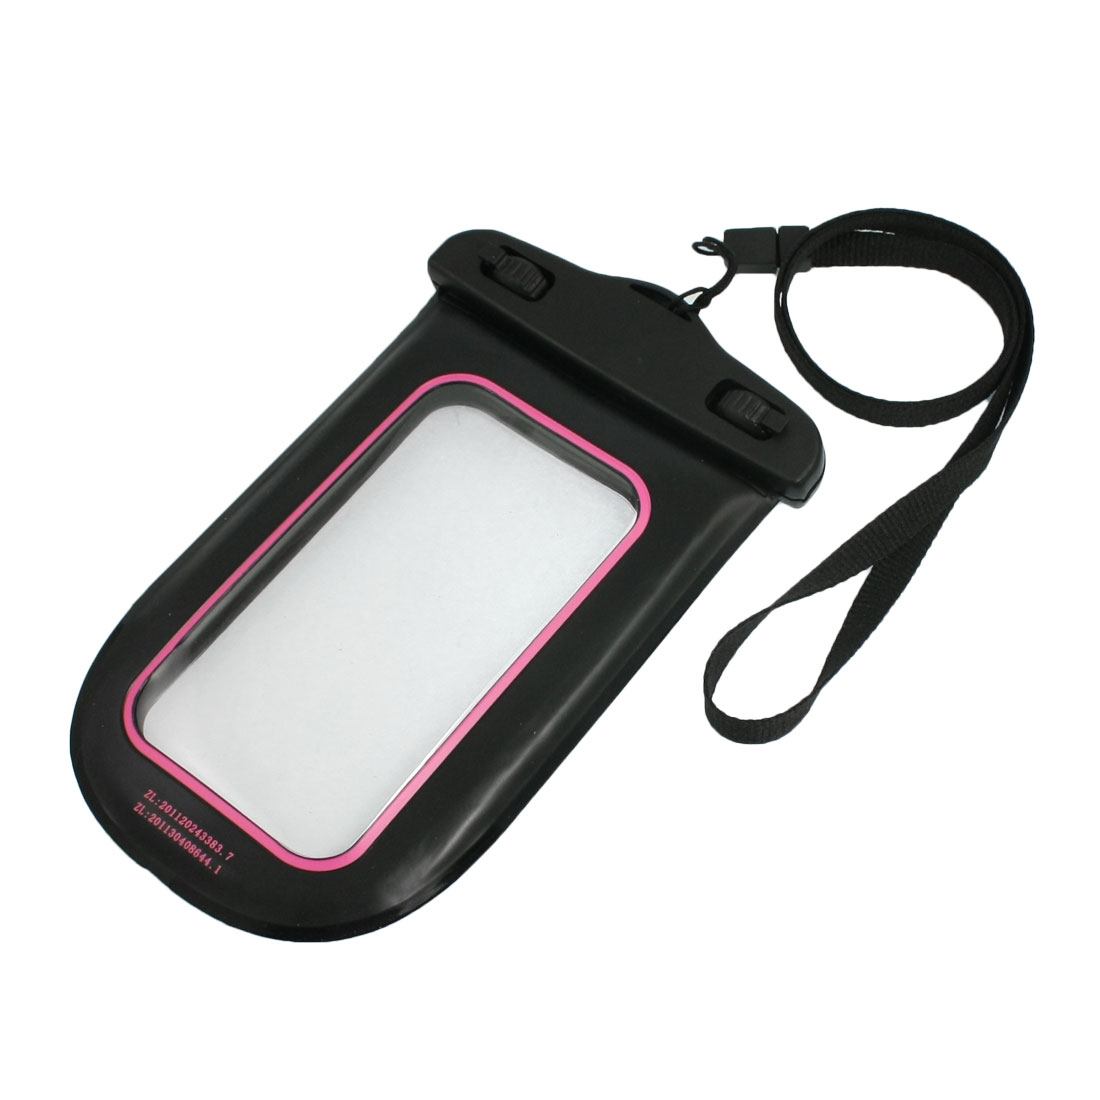 Black Plastic Water Resistant Bag Pouch w Neck Strap for Phone